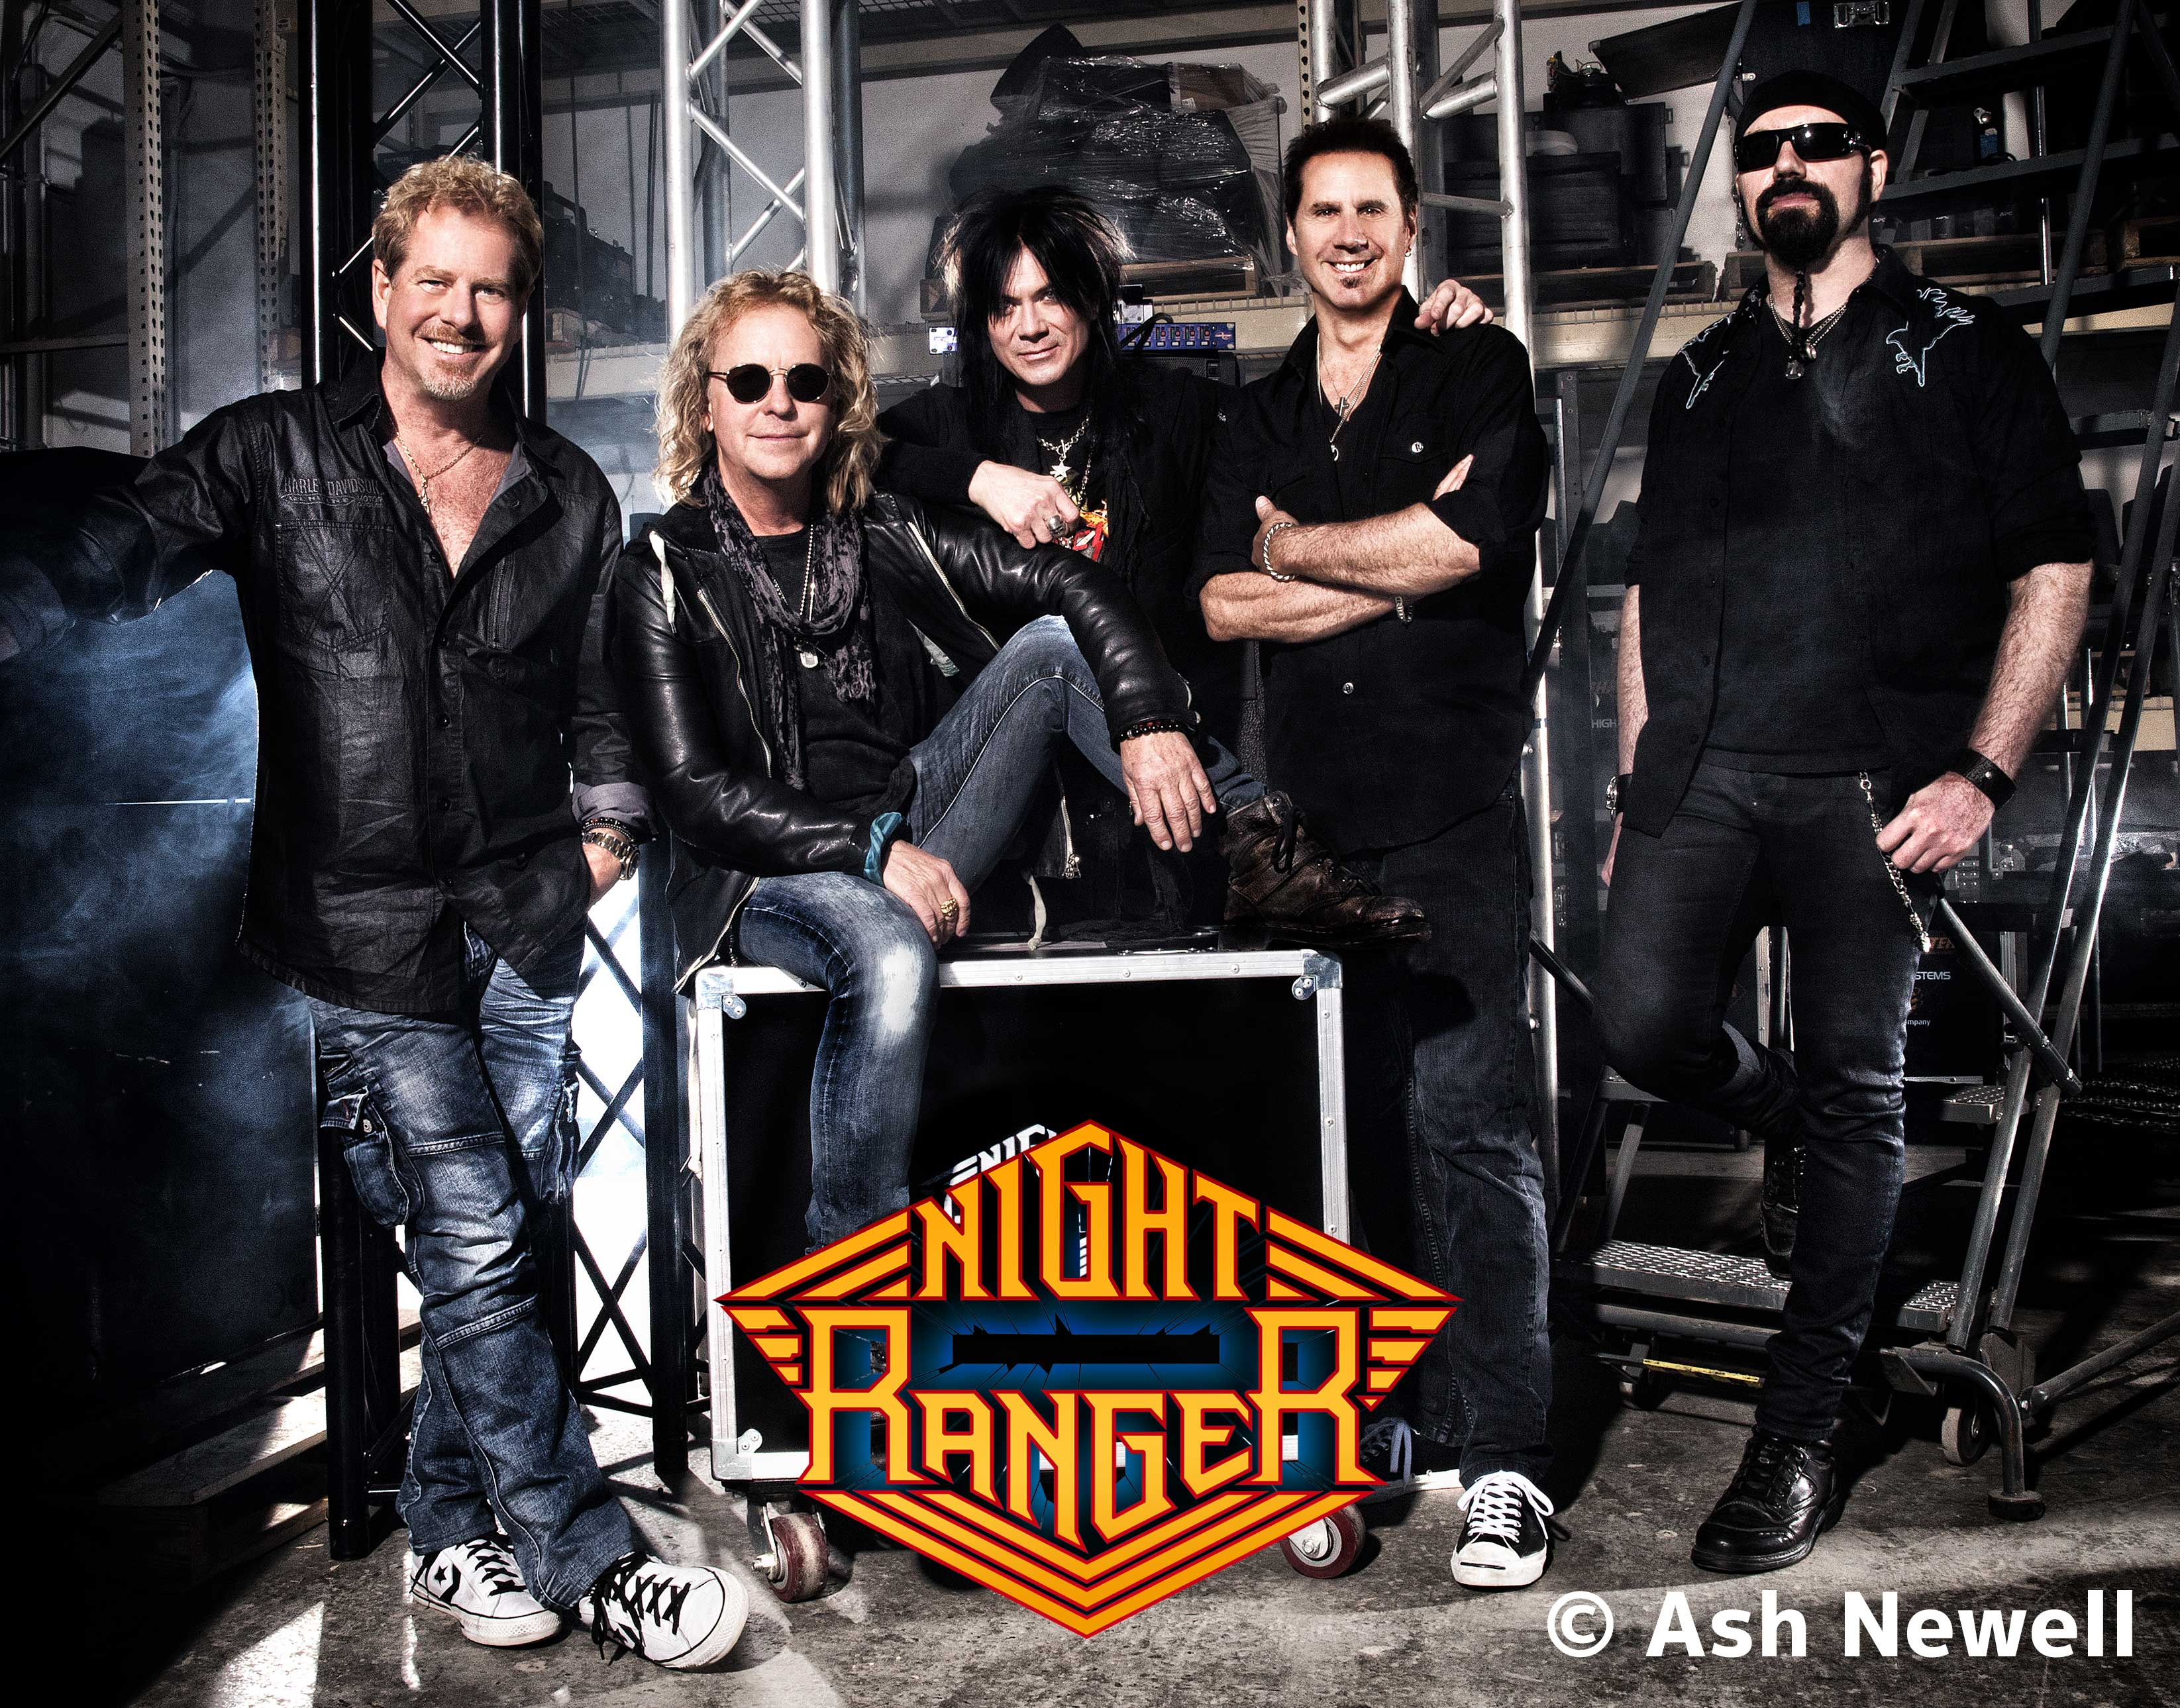 Night Ranger photo by Ash Newell